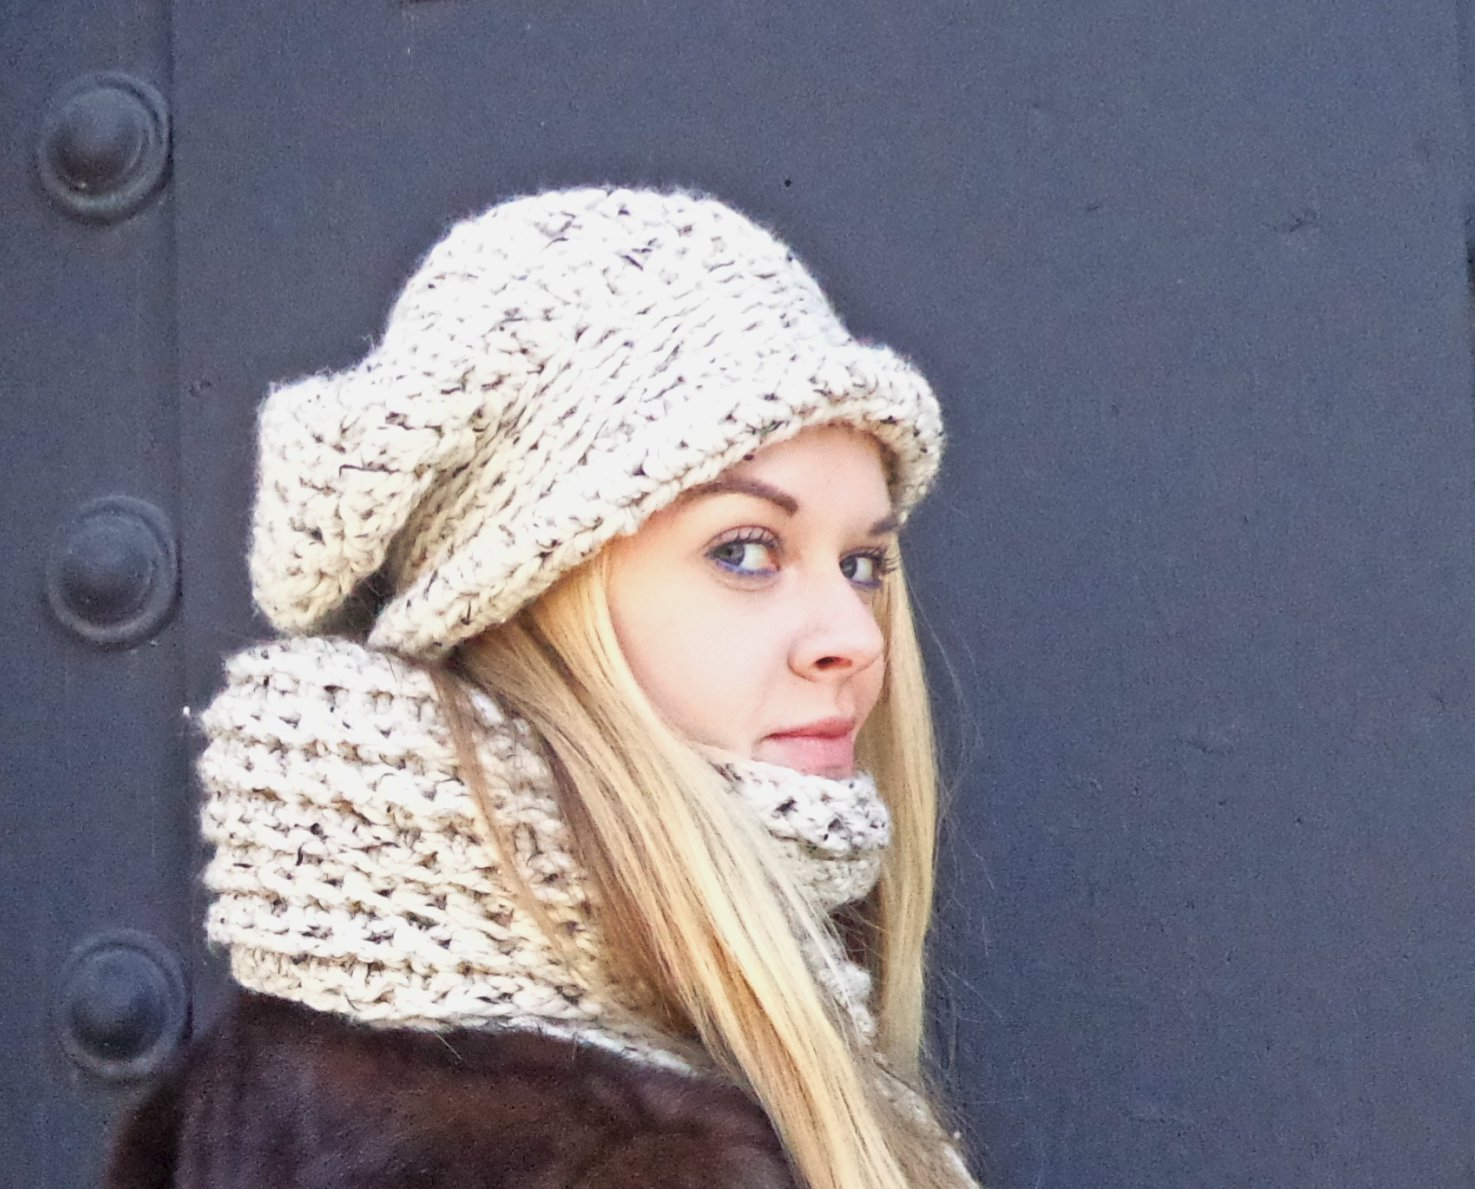 Chance-Maxi-Chunky-Slouch-with-Band-and-Fold-up-Brim-and-Naylor-Maxi-Chunky-Scarf-with-Fringe-Oatmeal-Angled-View.jpg